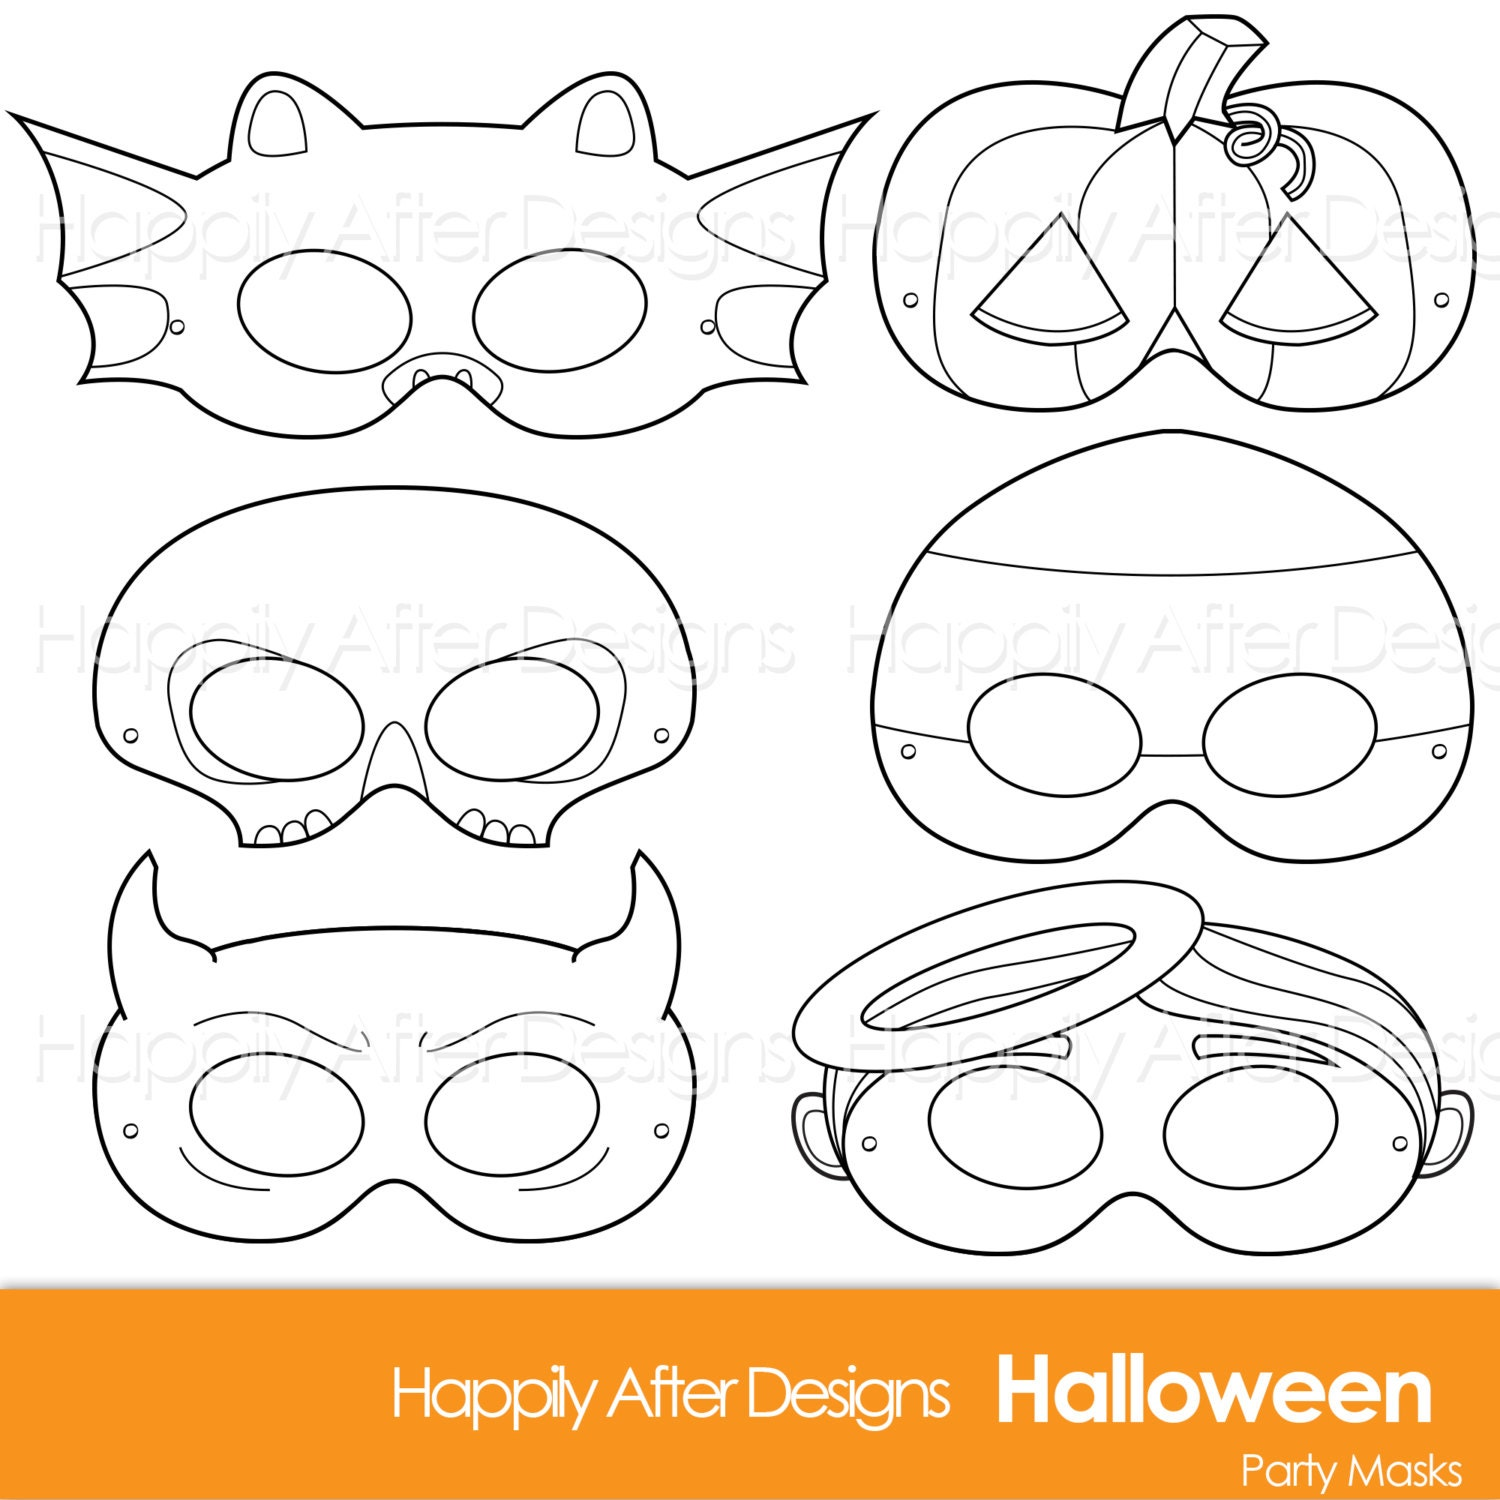 This is an image of Witty Halloween Mask Printables